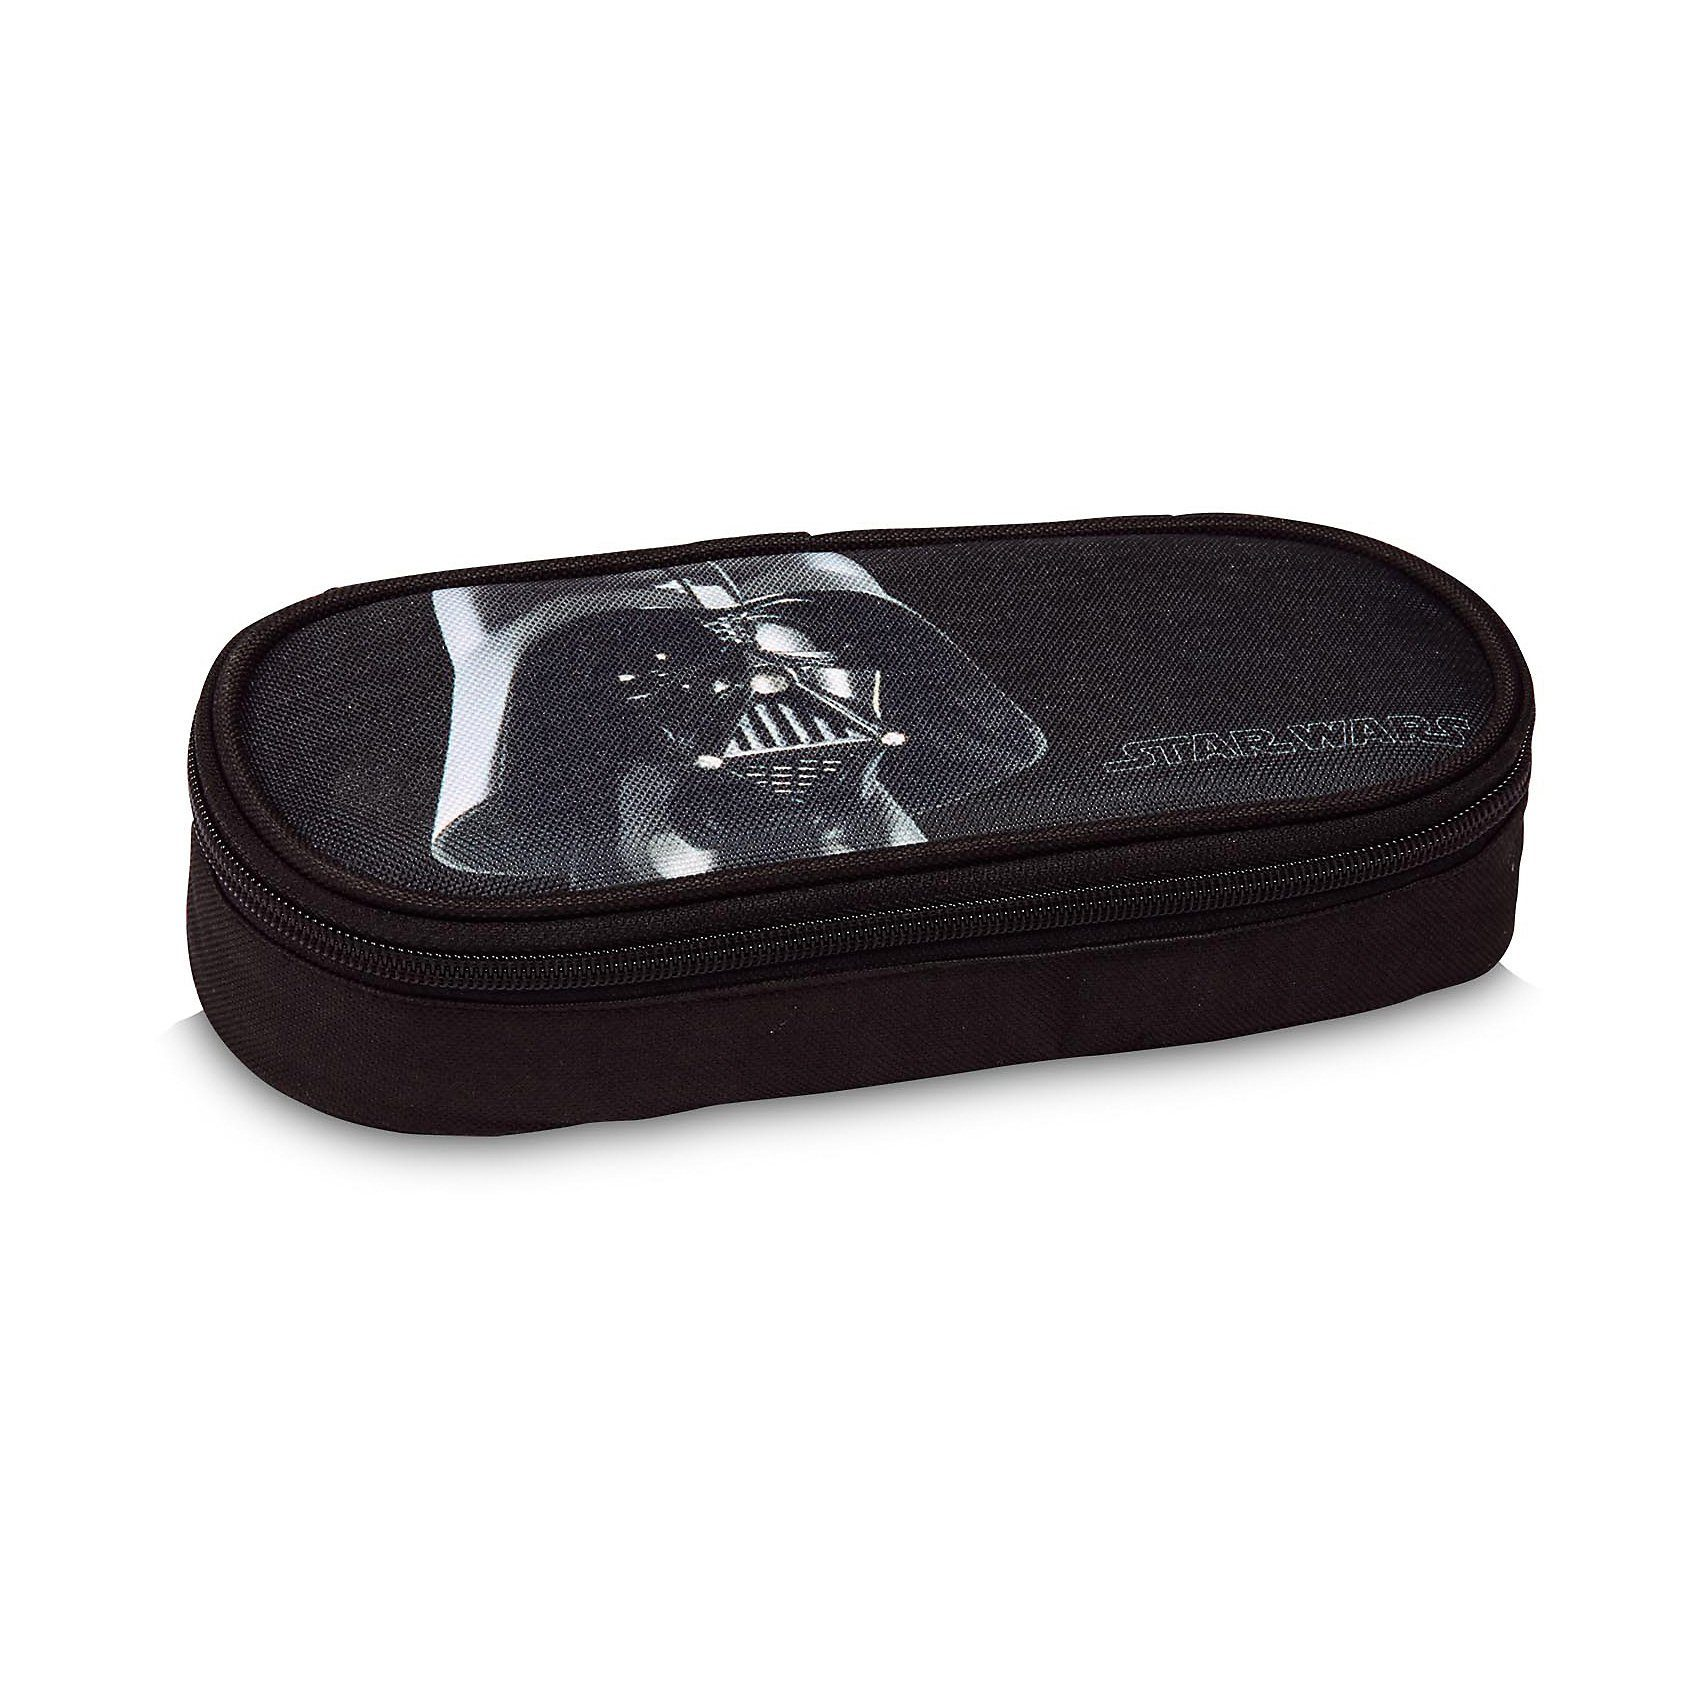 Etui-Box Star Wars Darth Vader